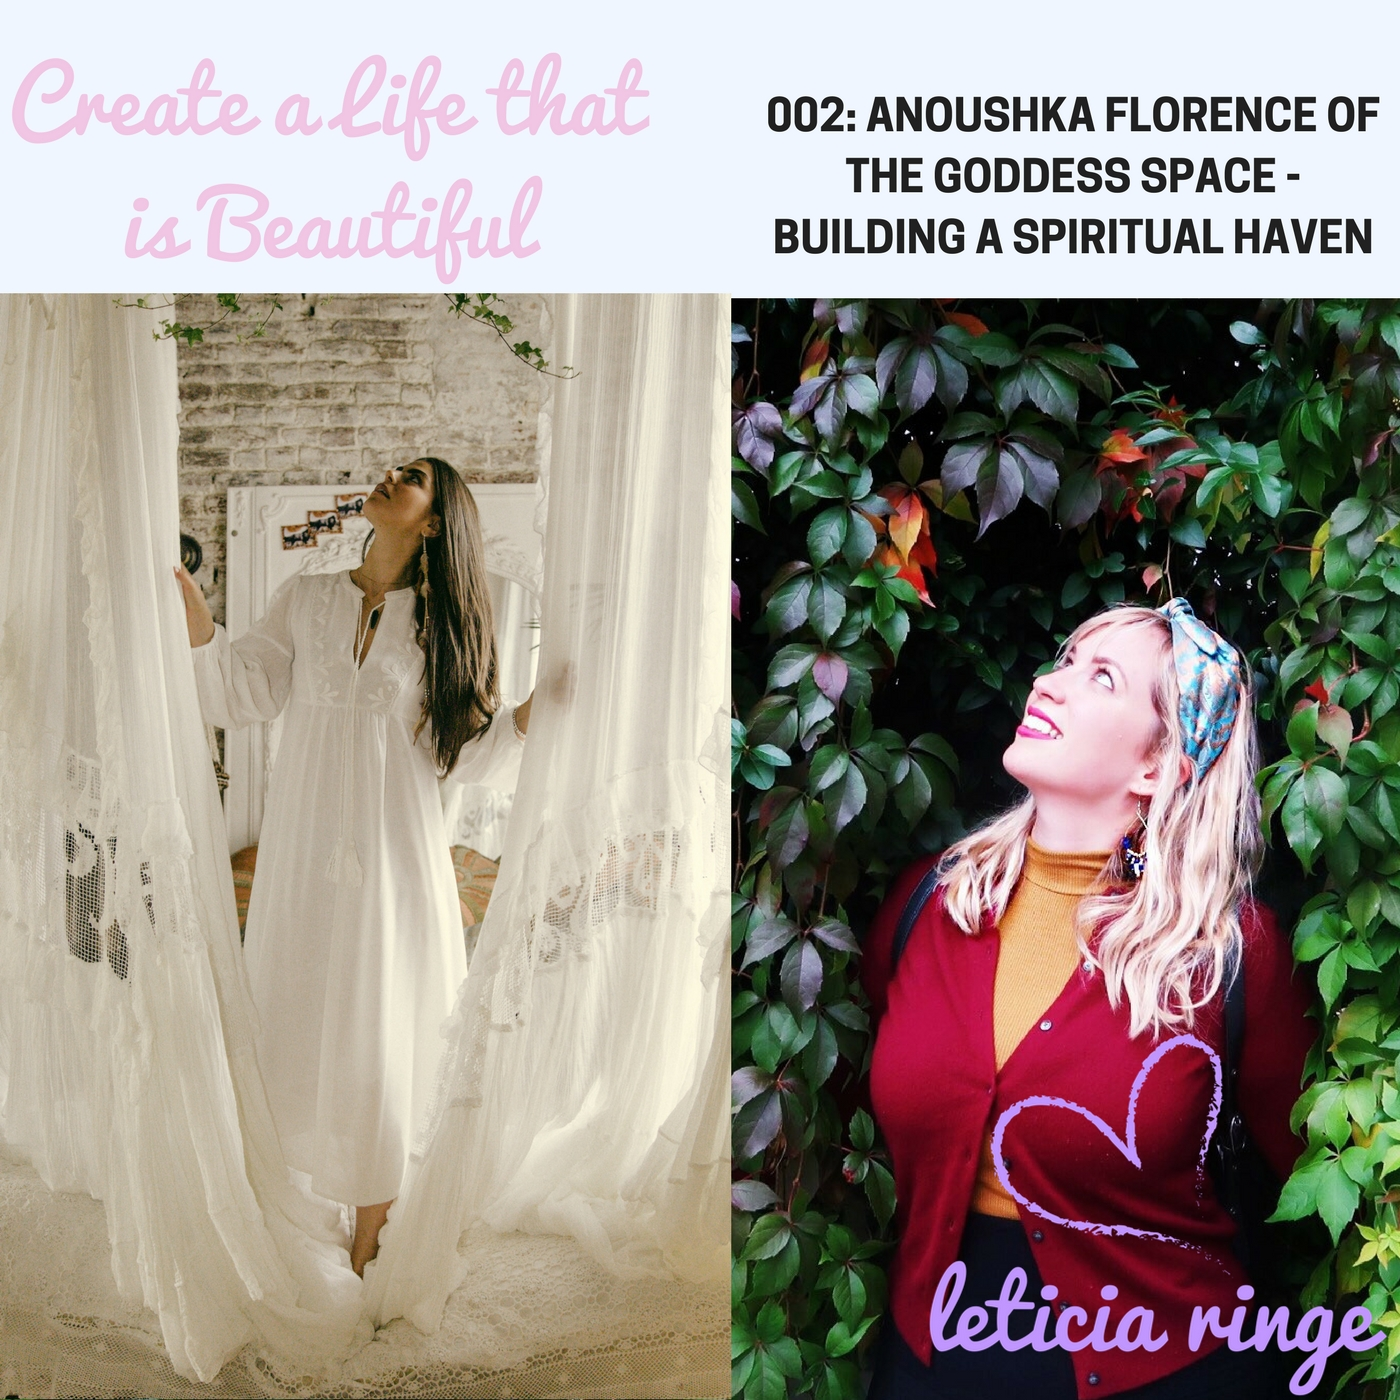 Anoushka Florence of The Goddess Space (photo on right by Ingrid of @cactus4)